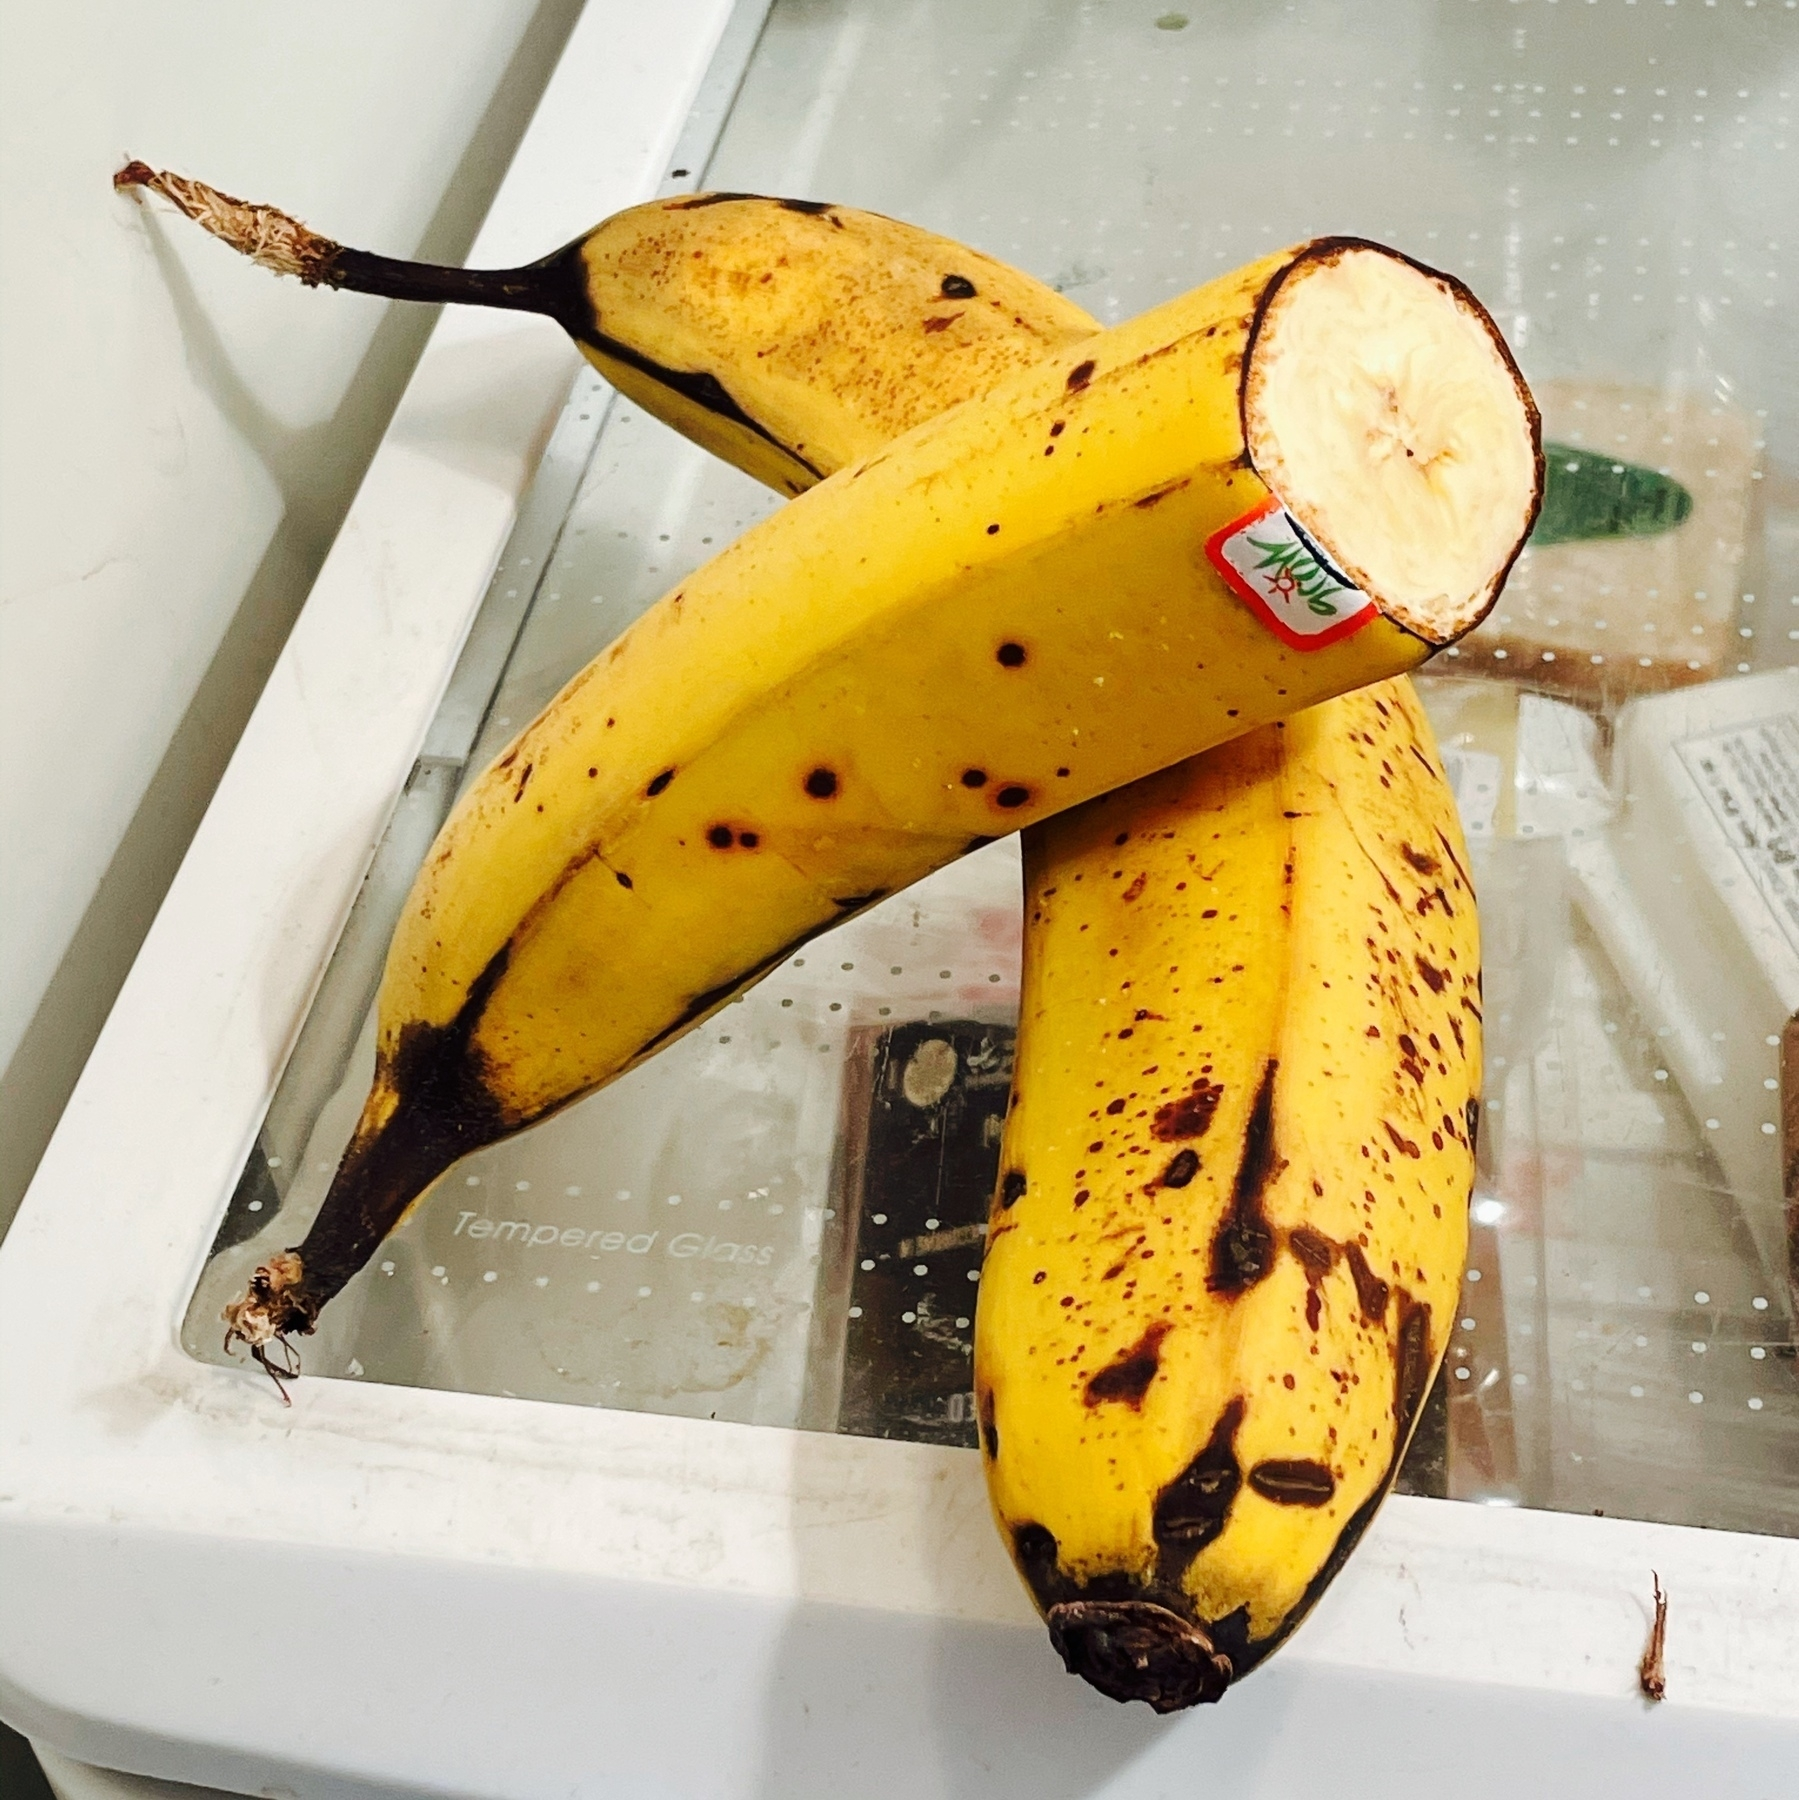 one and a half bananas in the refrigerator